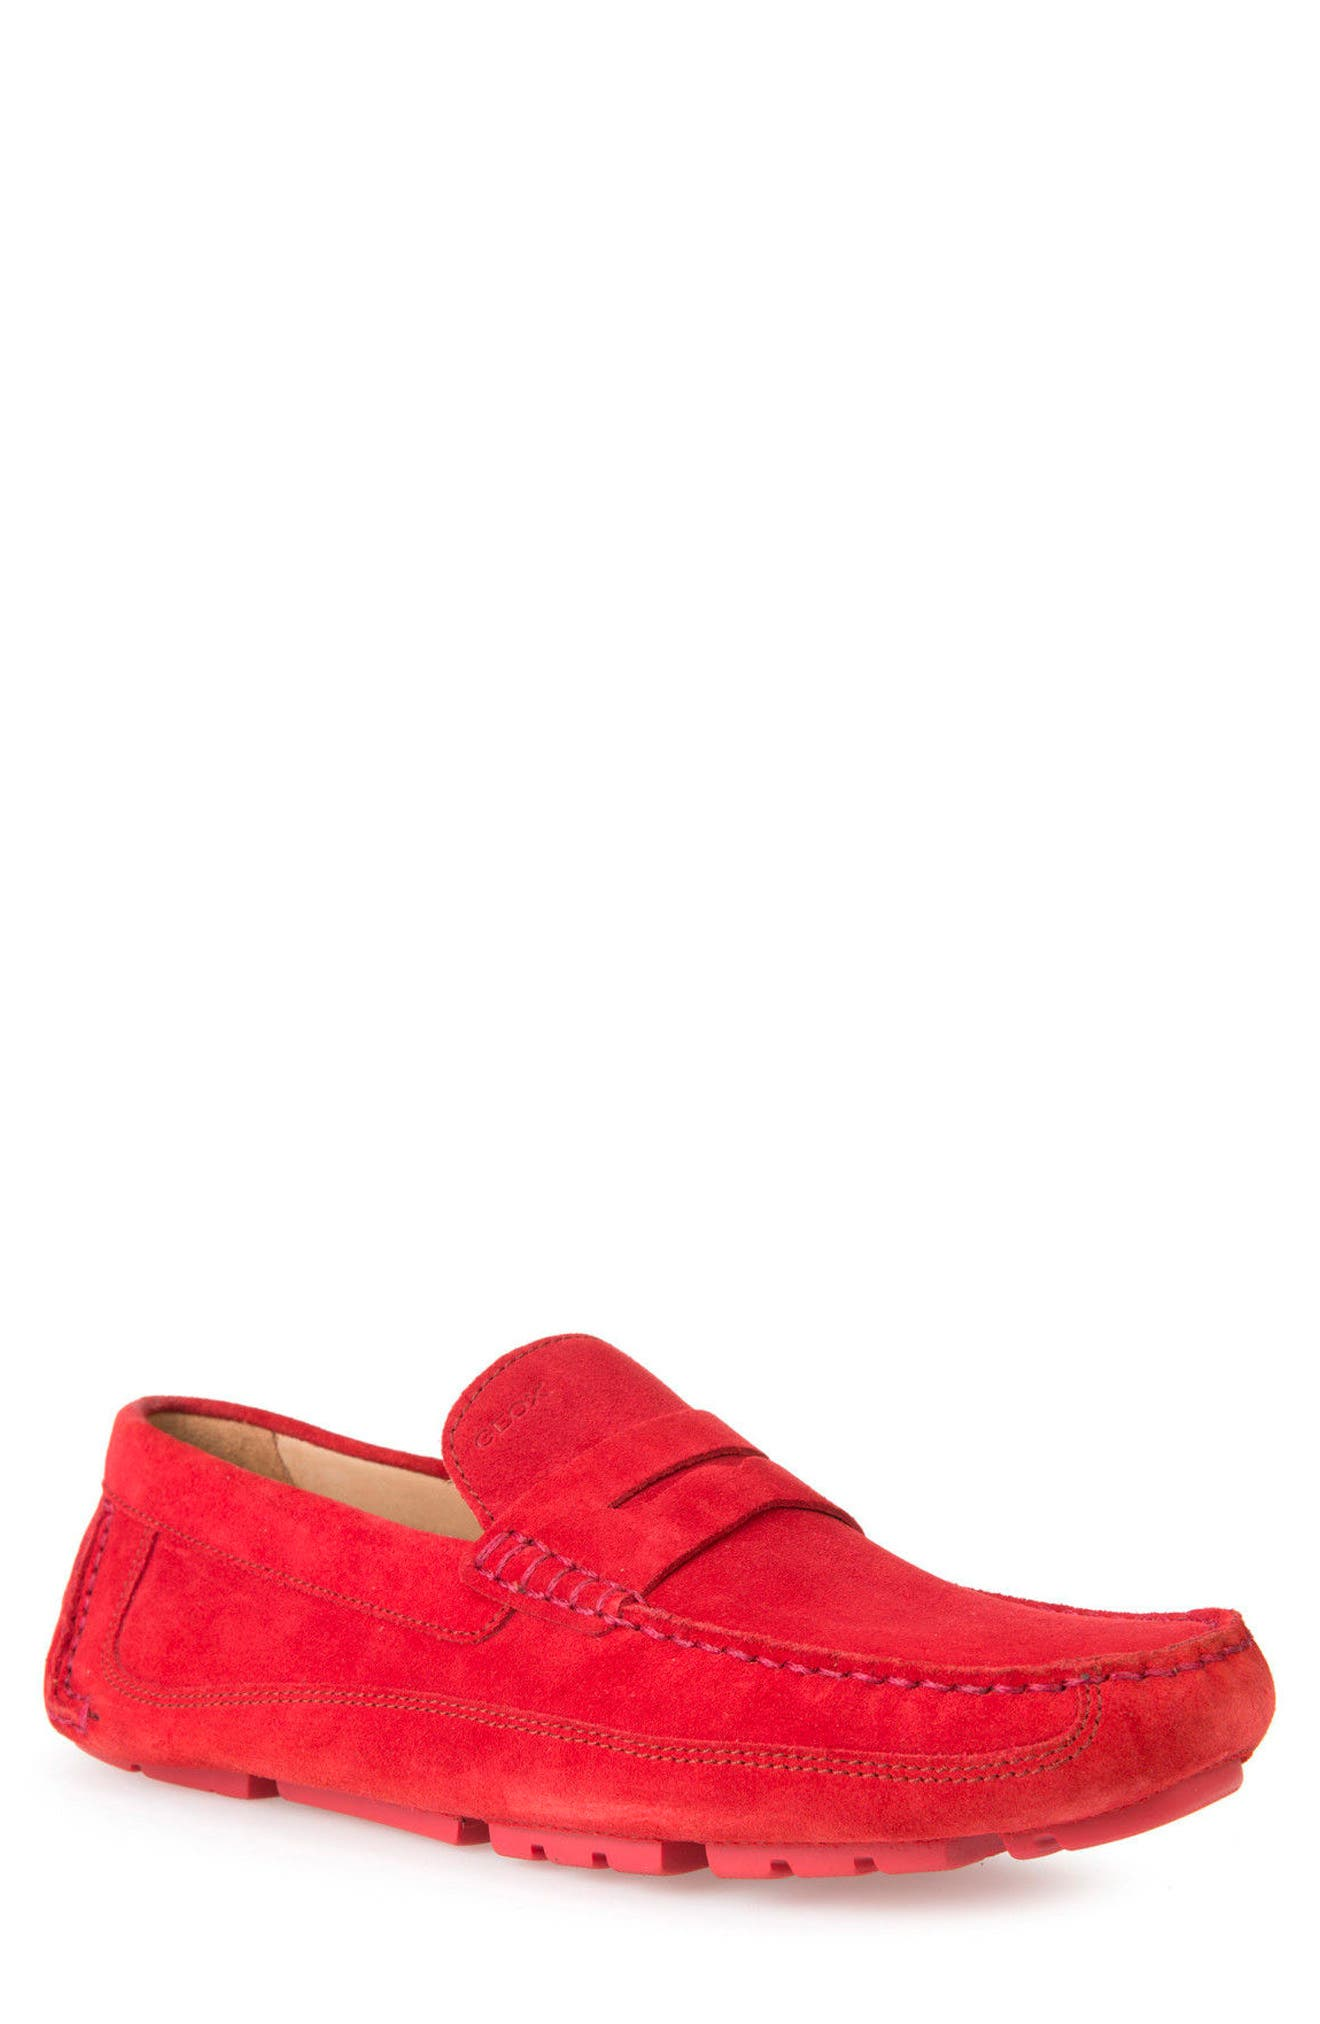 Melbourne 1 Driving Shoe,                         Main,                         color, Red Suede